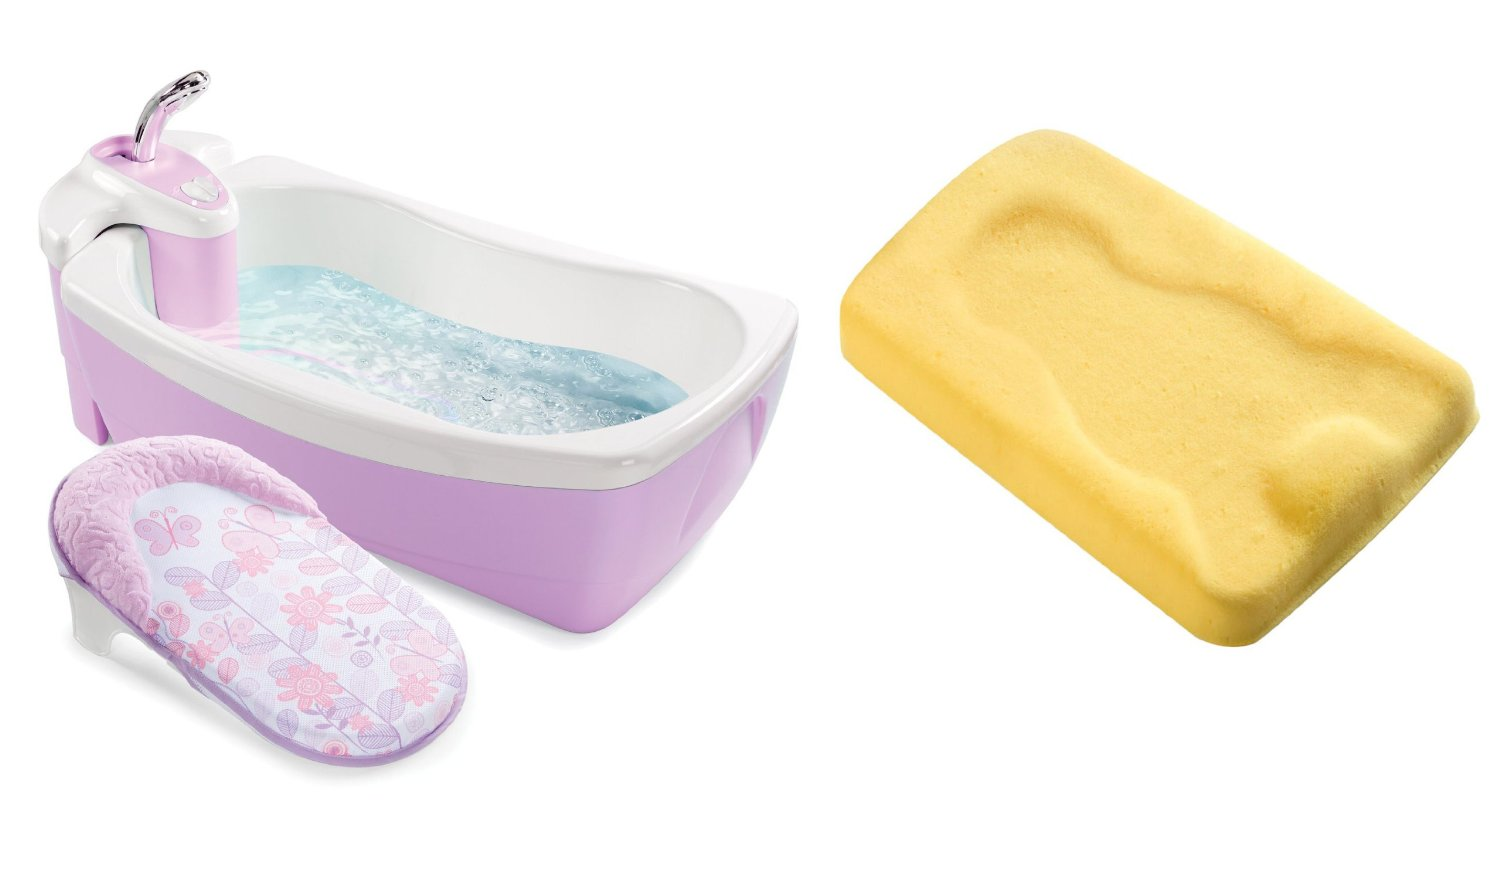 Summer Infant Lil' Luxuries Whirlpool, Bubbling Spa & Shower with Bath Sponge Cradling Support, Girl by Summer Infant